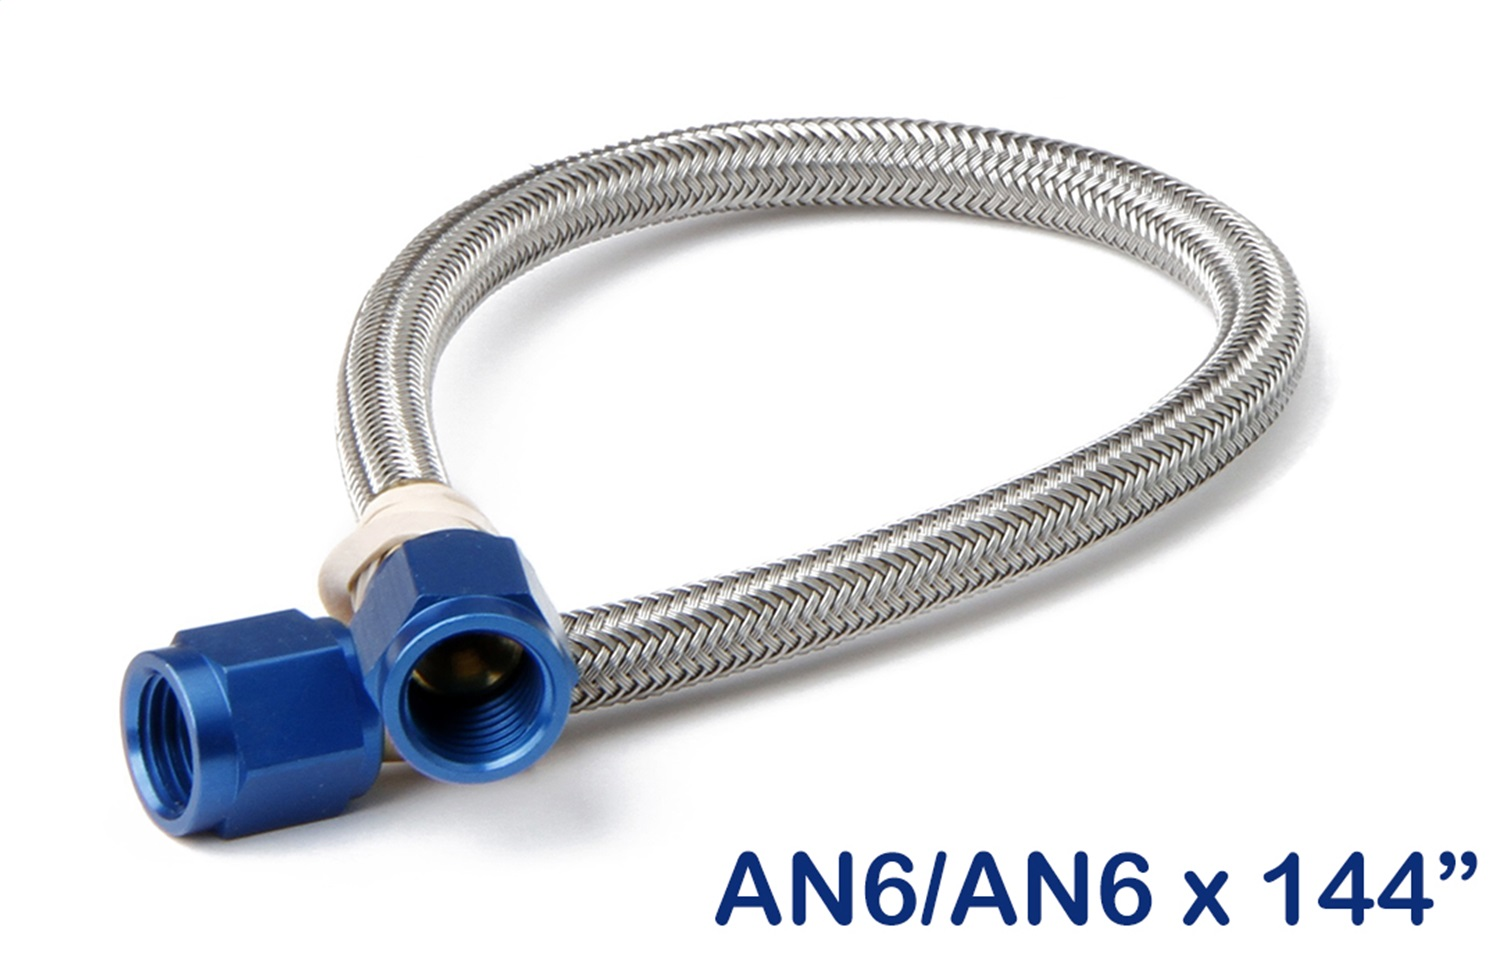 NOS 15470NOS Stainless Steel Braided Hose